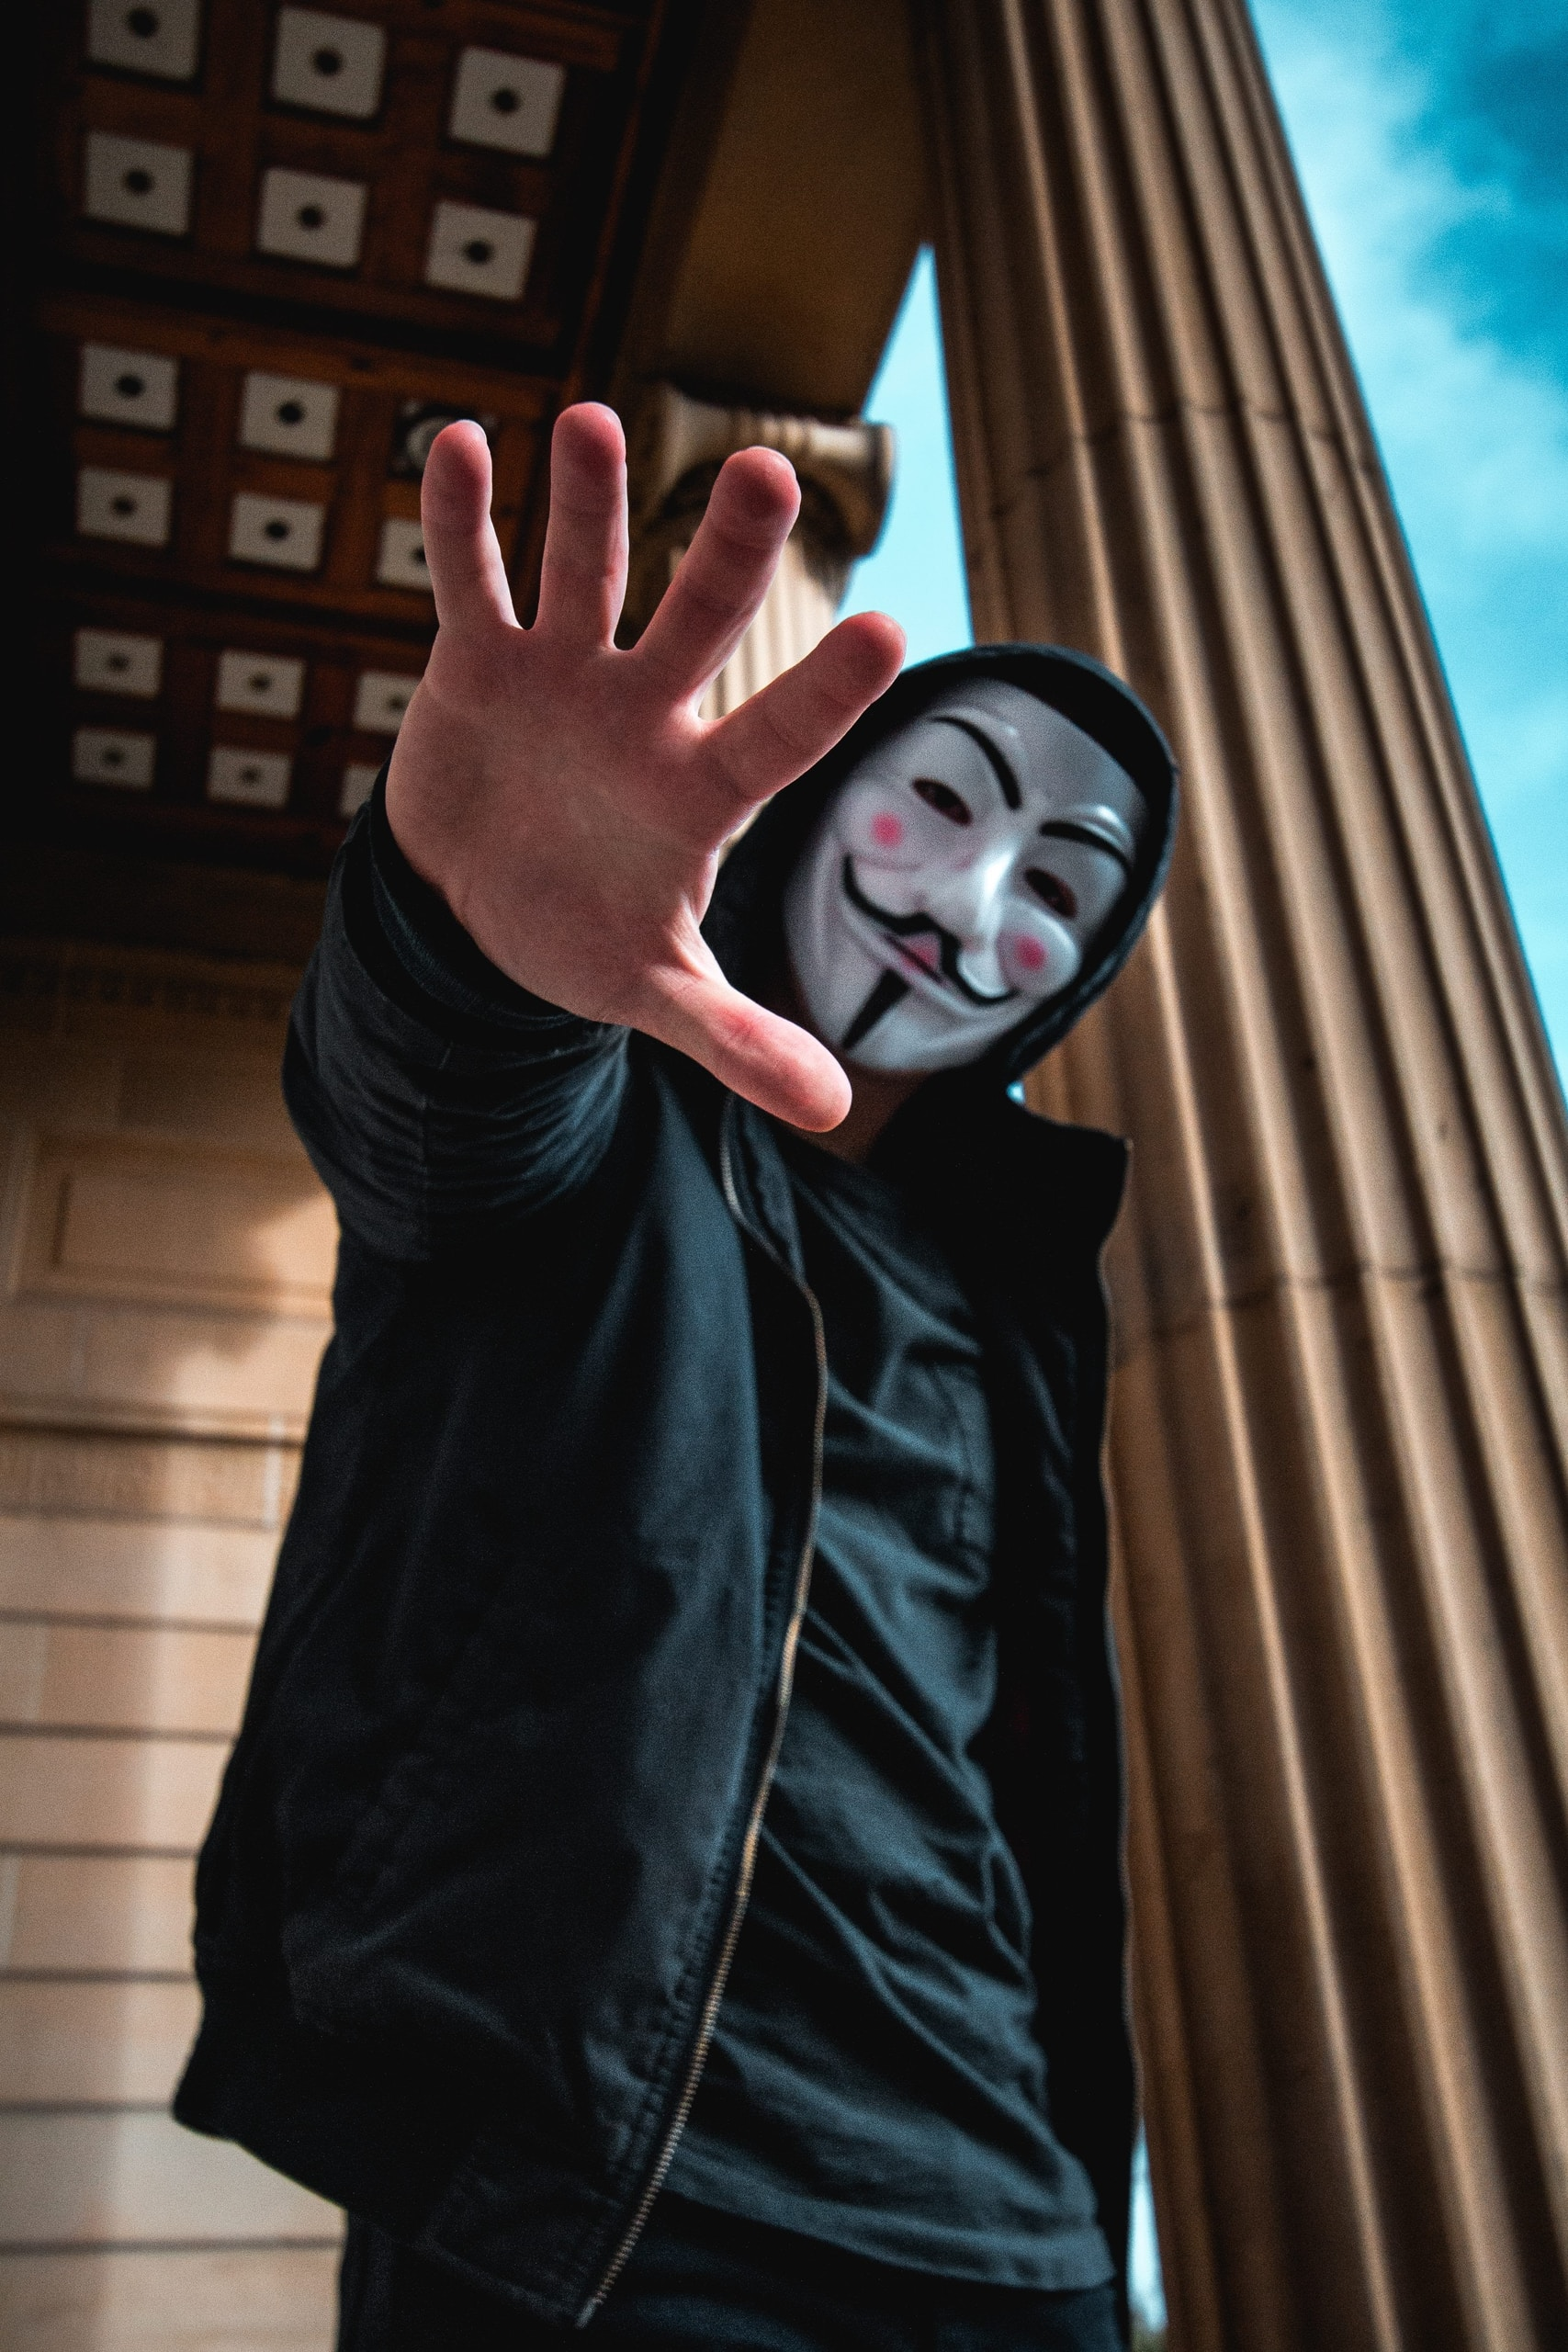 man wearing Guy Fawkes Mask standing inside building